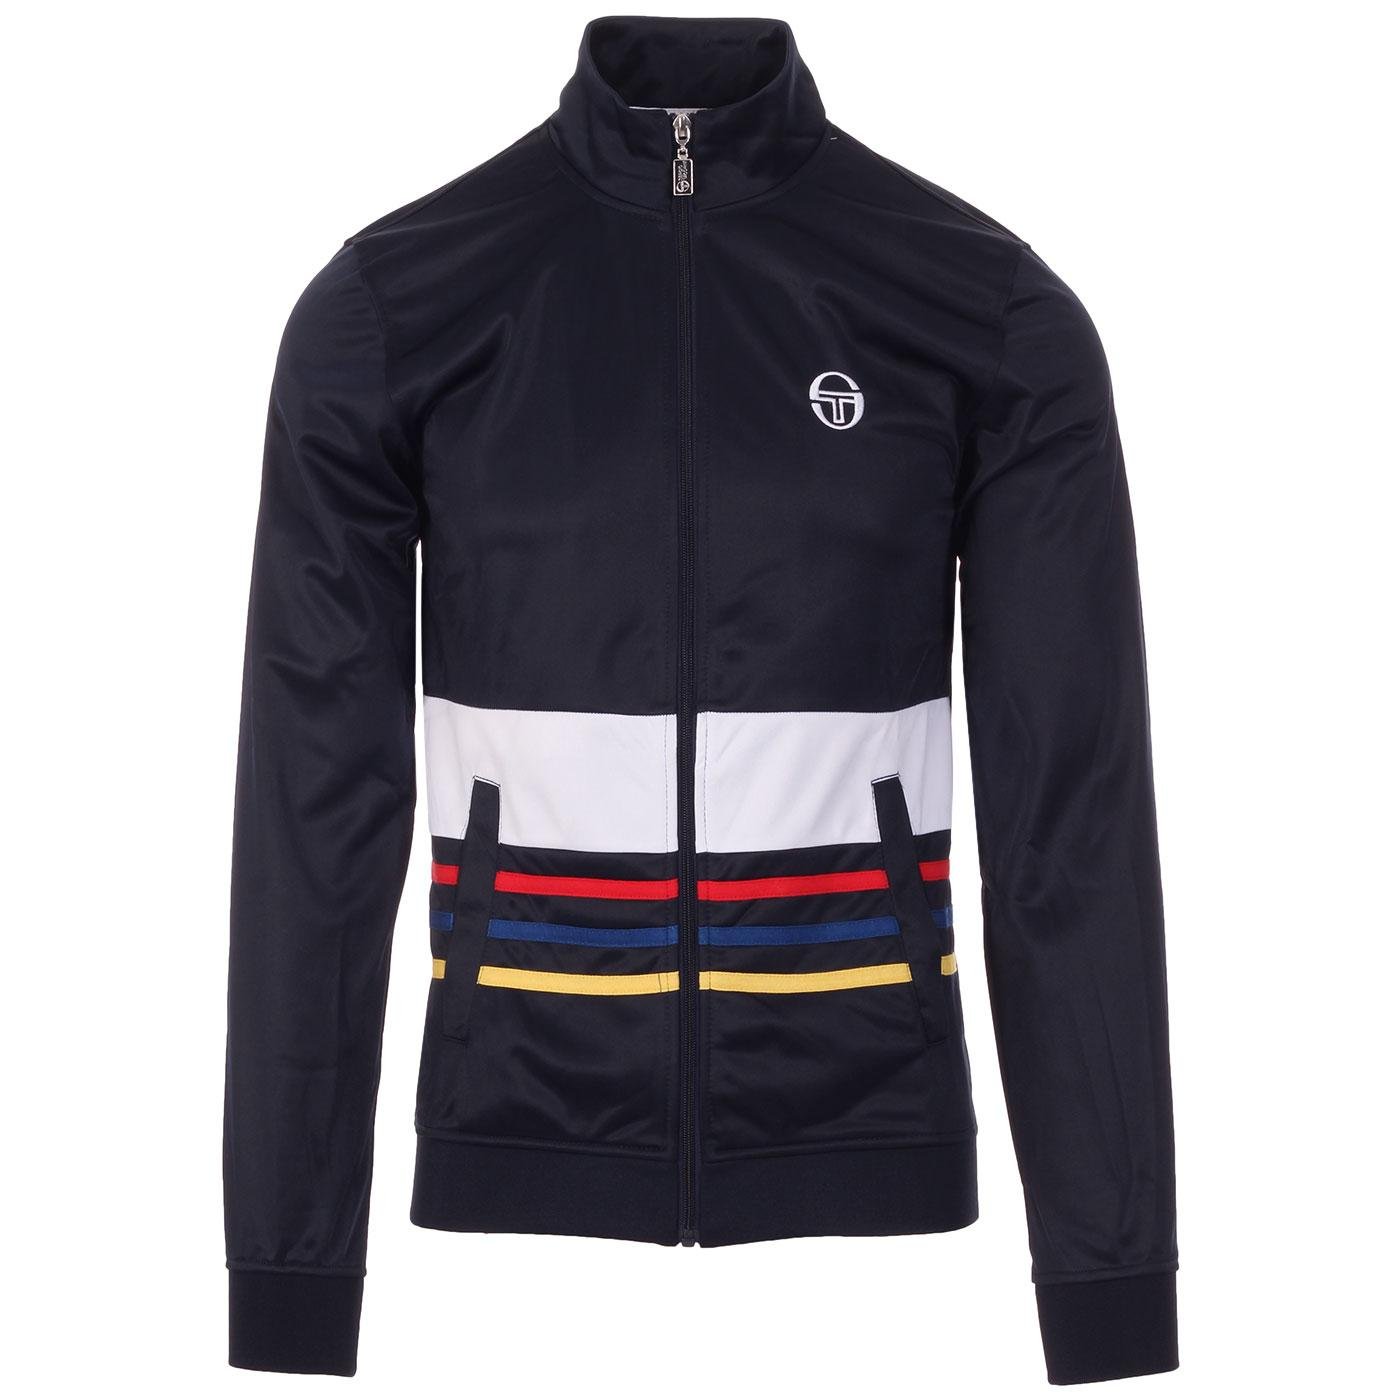 Pepper SERGIO TACCHINI Colour Block Track Top (TE)